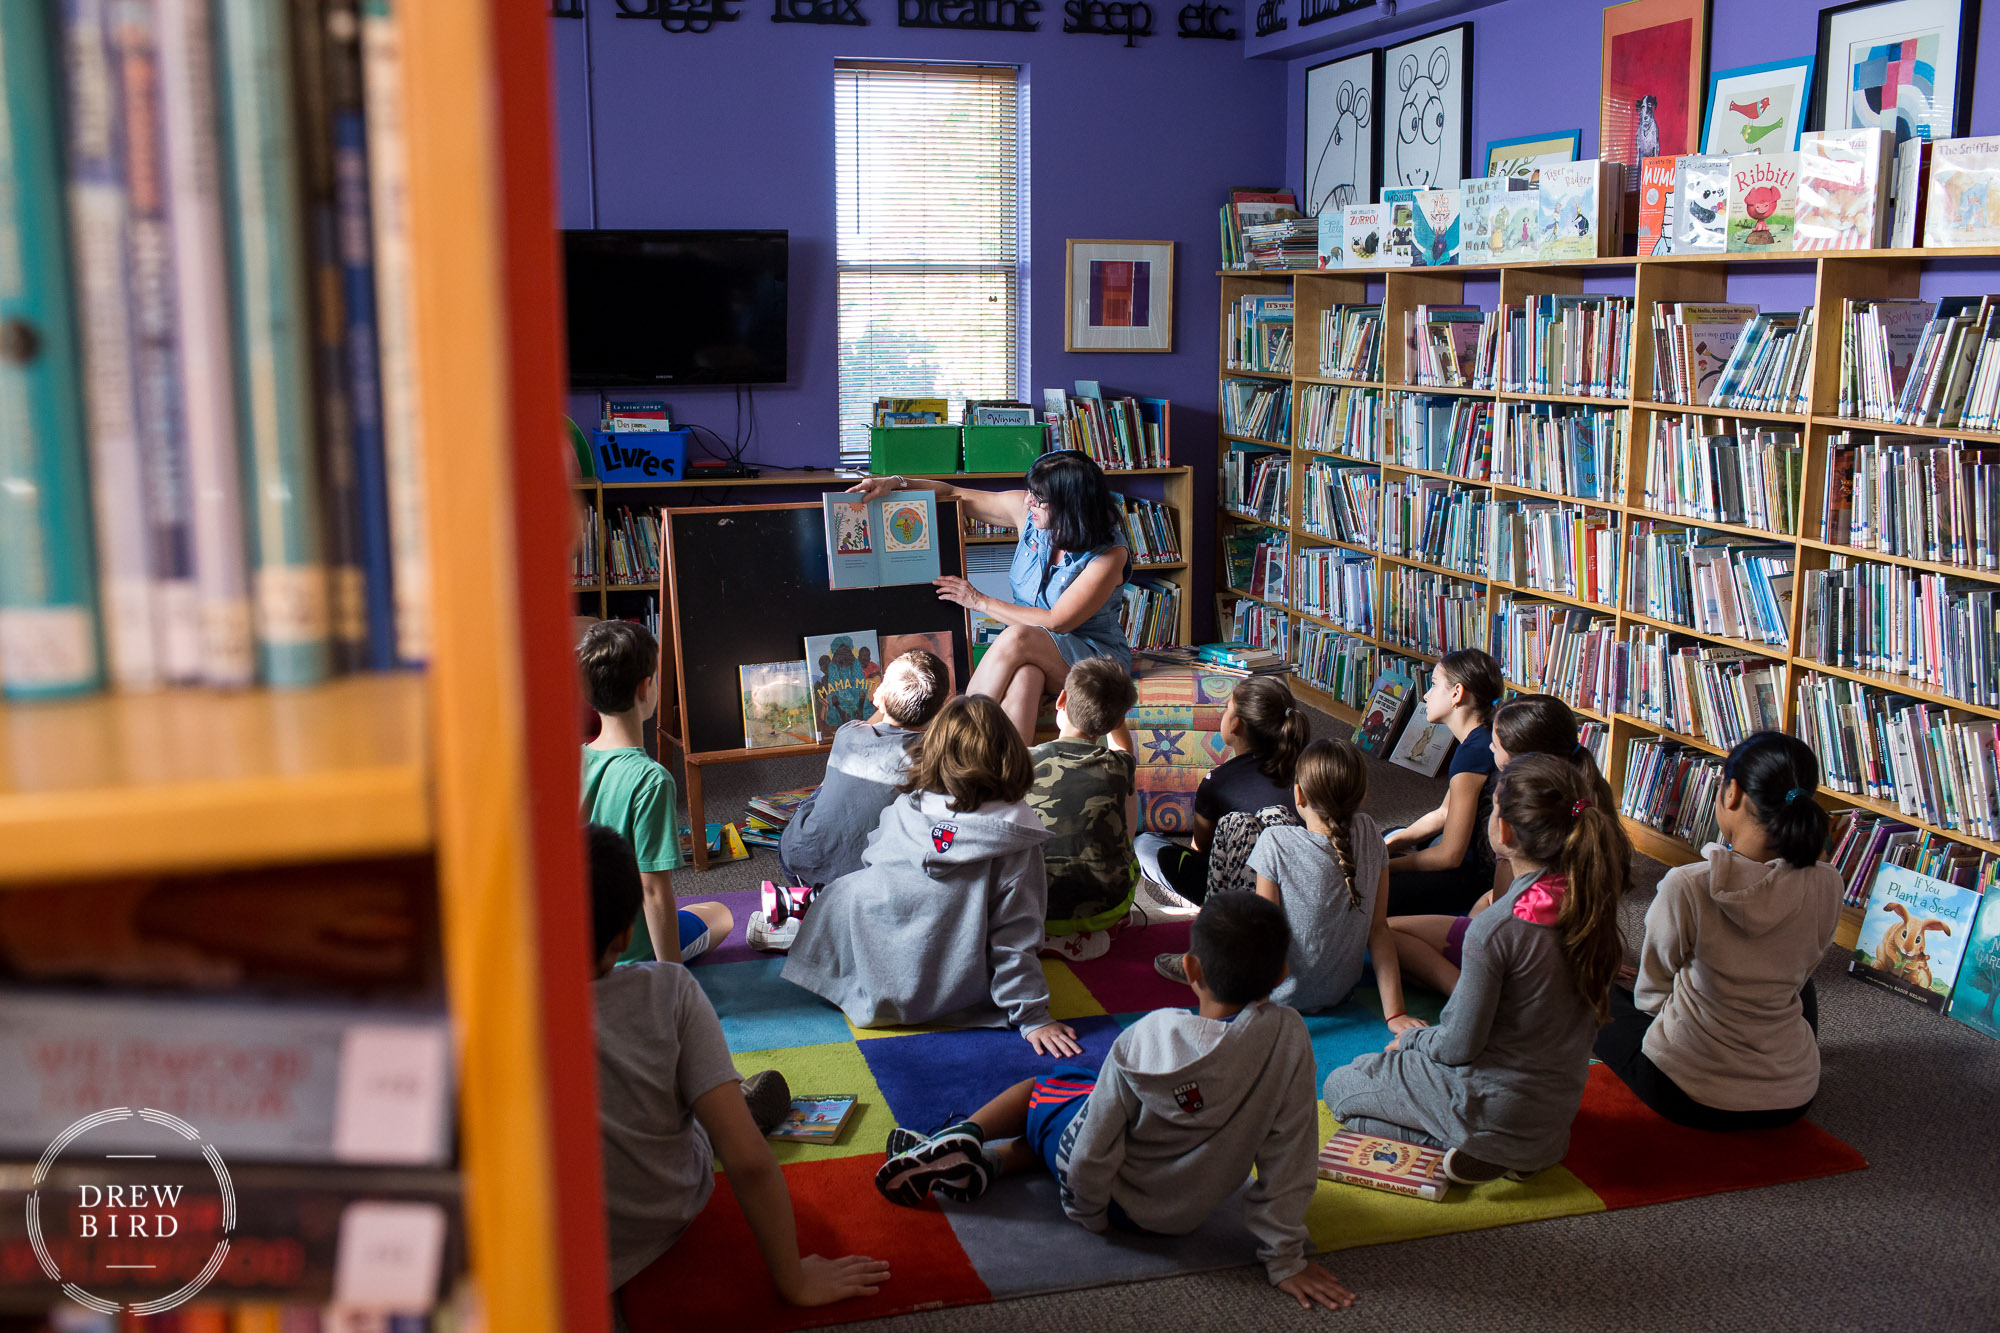 A woman teacher reads a book to a group of primary school students sitting on the floor in library at St. George's School of Montreal in Quebec, Canada. San Francisco independent school photographer and private school marketing photography and brand lifestyle photography by Drew Bird.